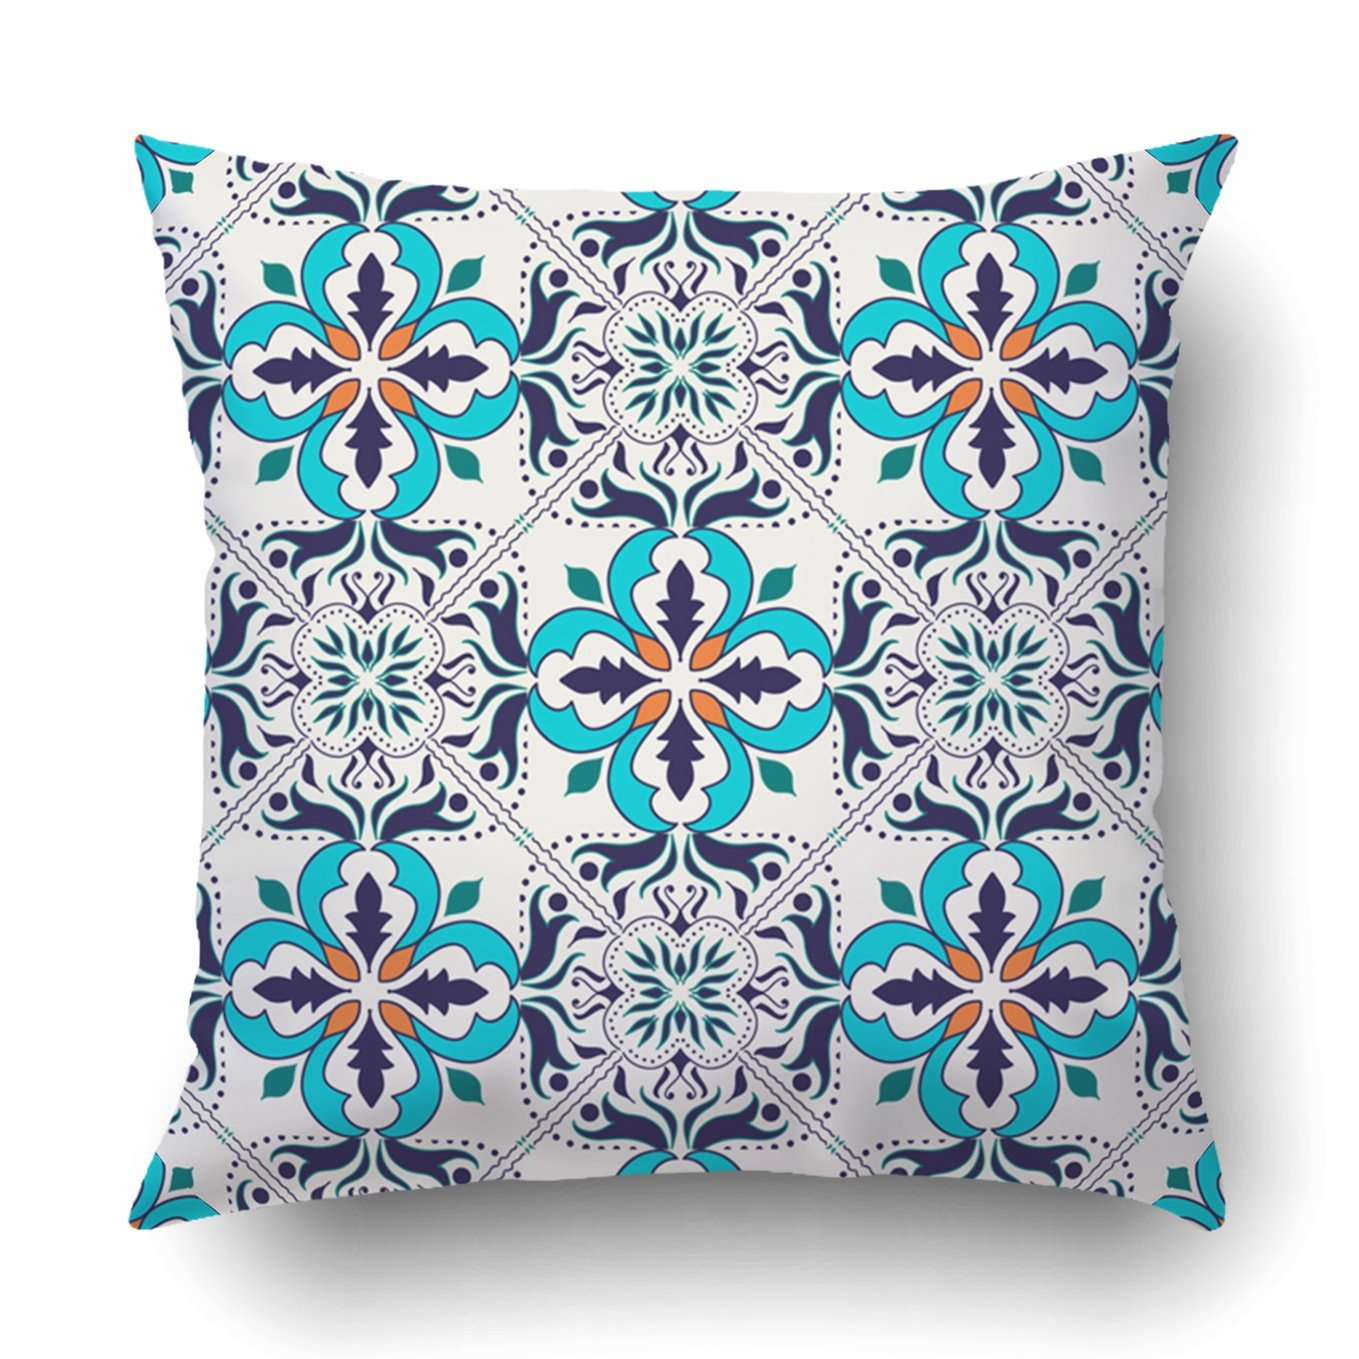 Emvency Decorative Throw Pillow Cover Case for Bedroom Couch Sofa Home Decor Vintage Italian tile with Moroccan pattern Square 16x16 Inches Moroccan